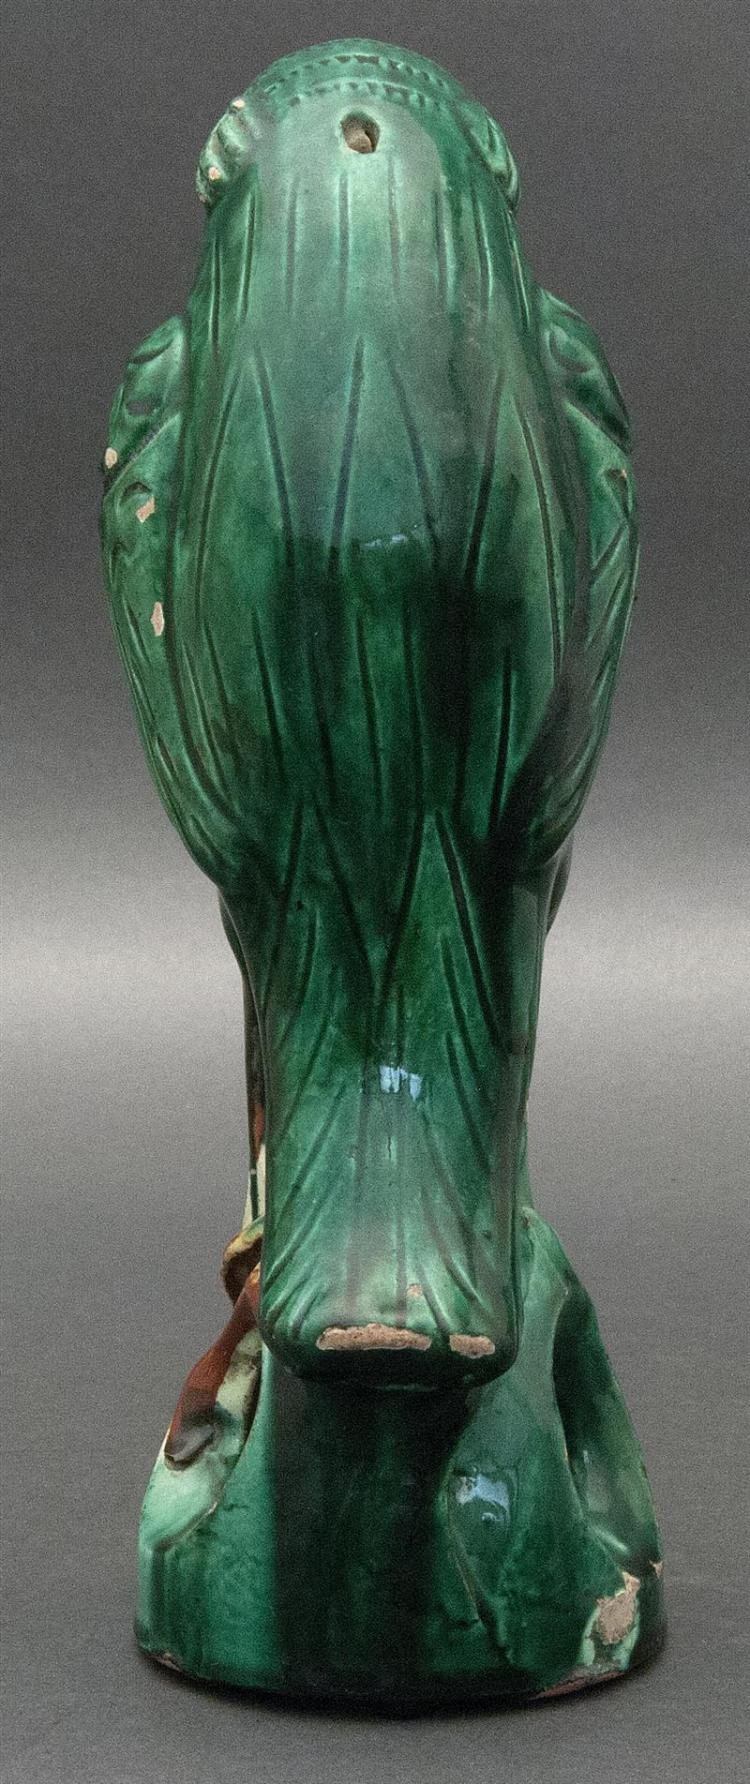 GREEN GLAZE POTTERY PARROT FIGURE Depicted perched on an openwork base. Height 9